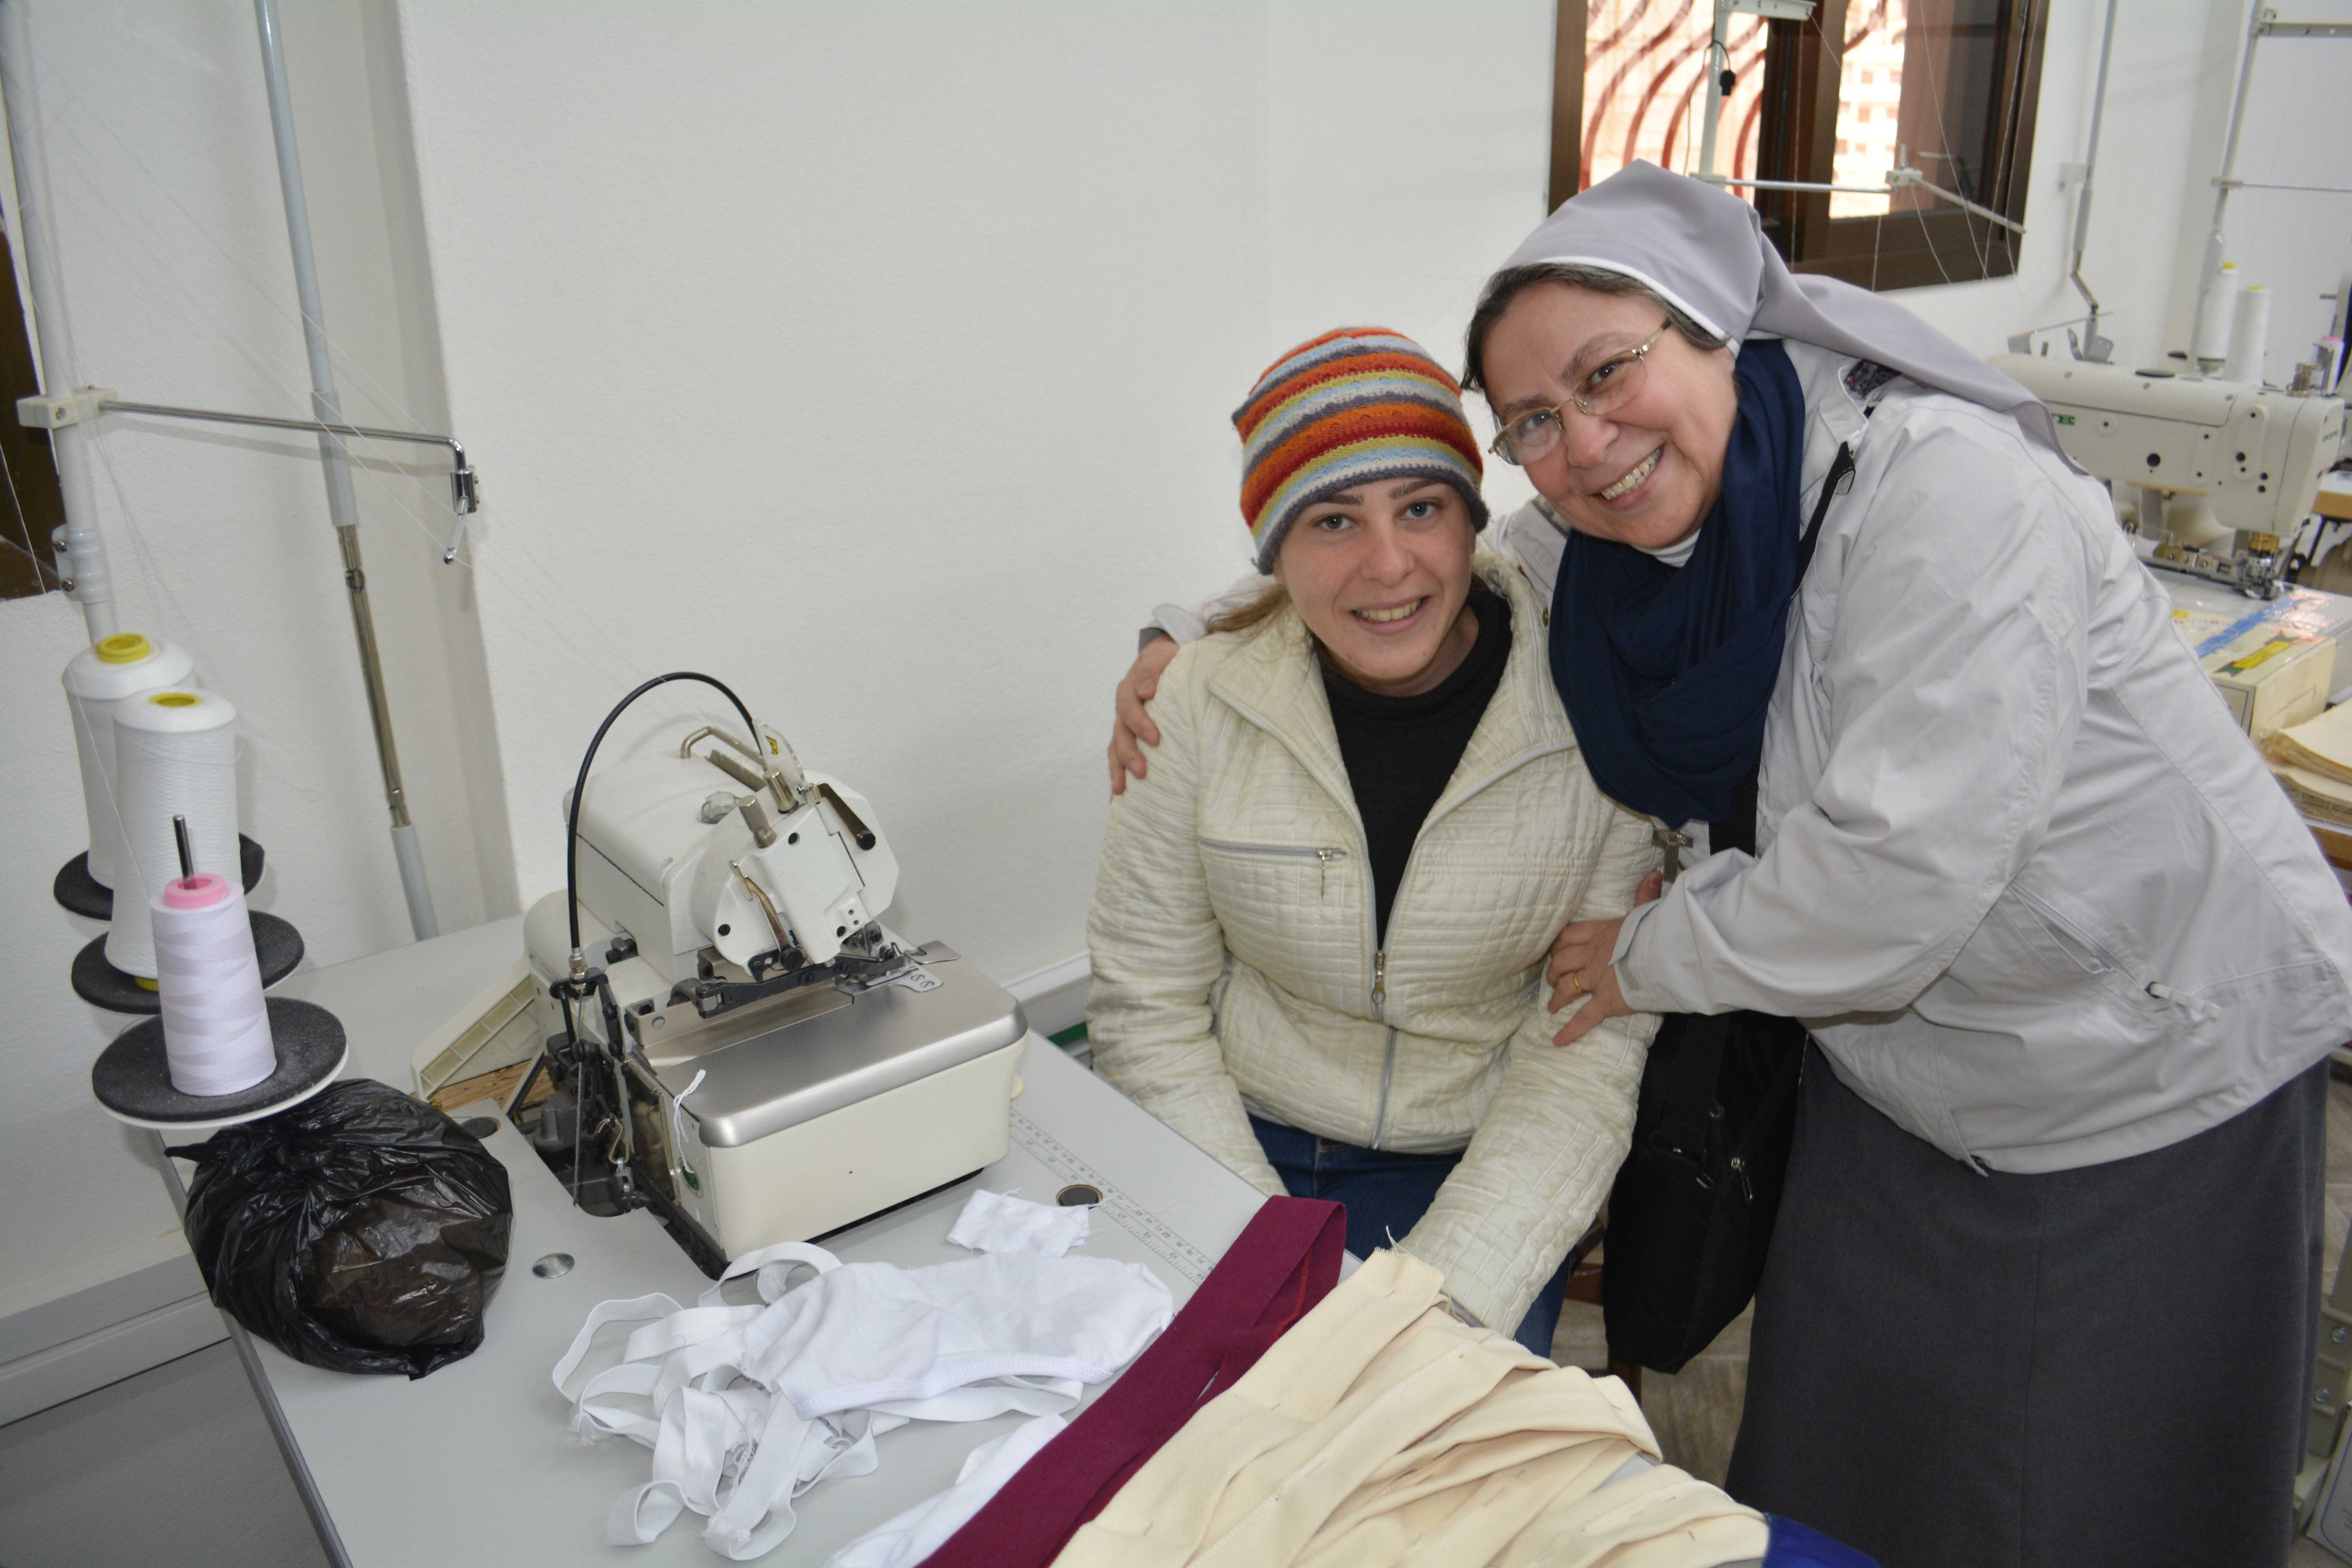 Sister Annie Demerjian with tailor Takla al Safadi in a workshop in Maaloula.